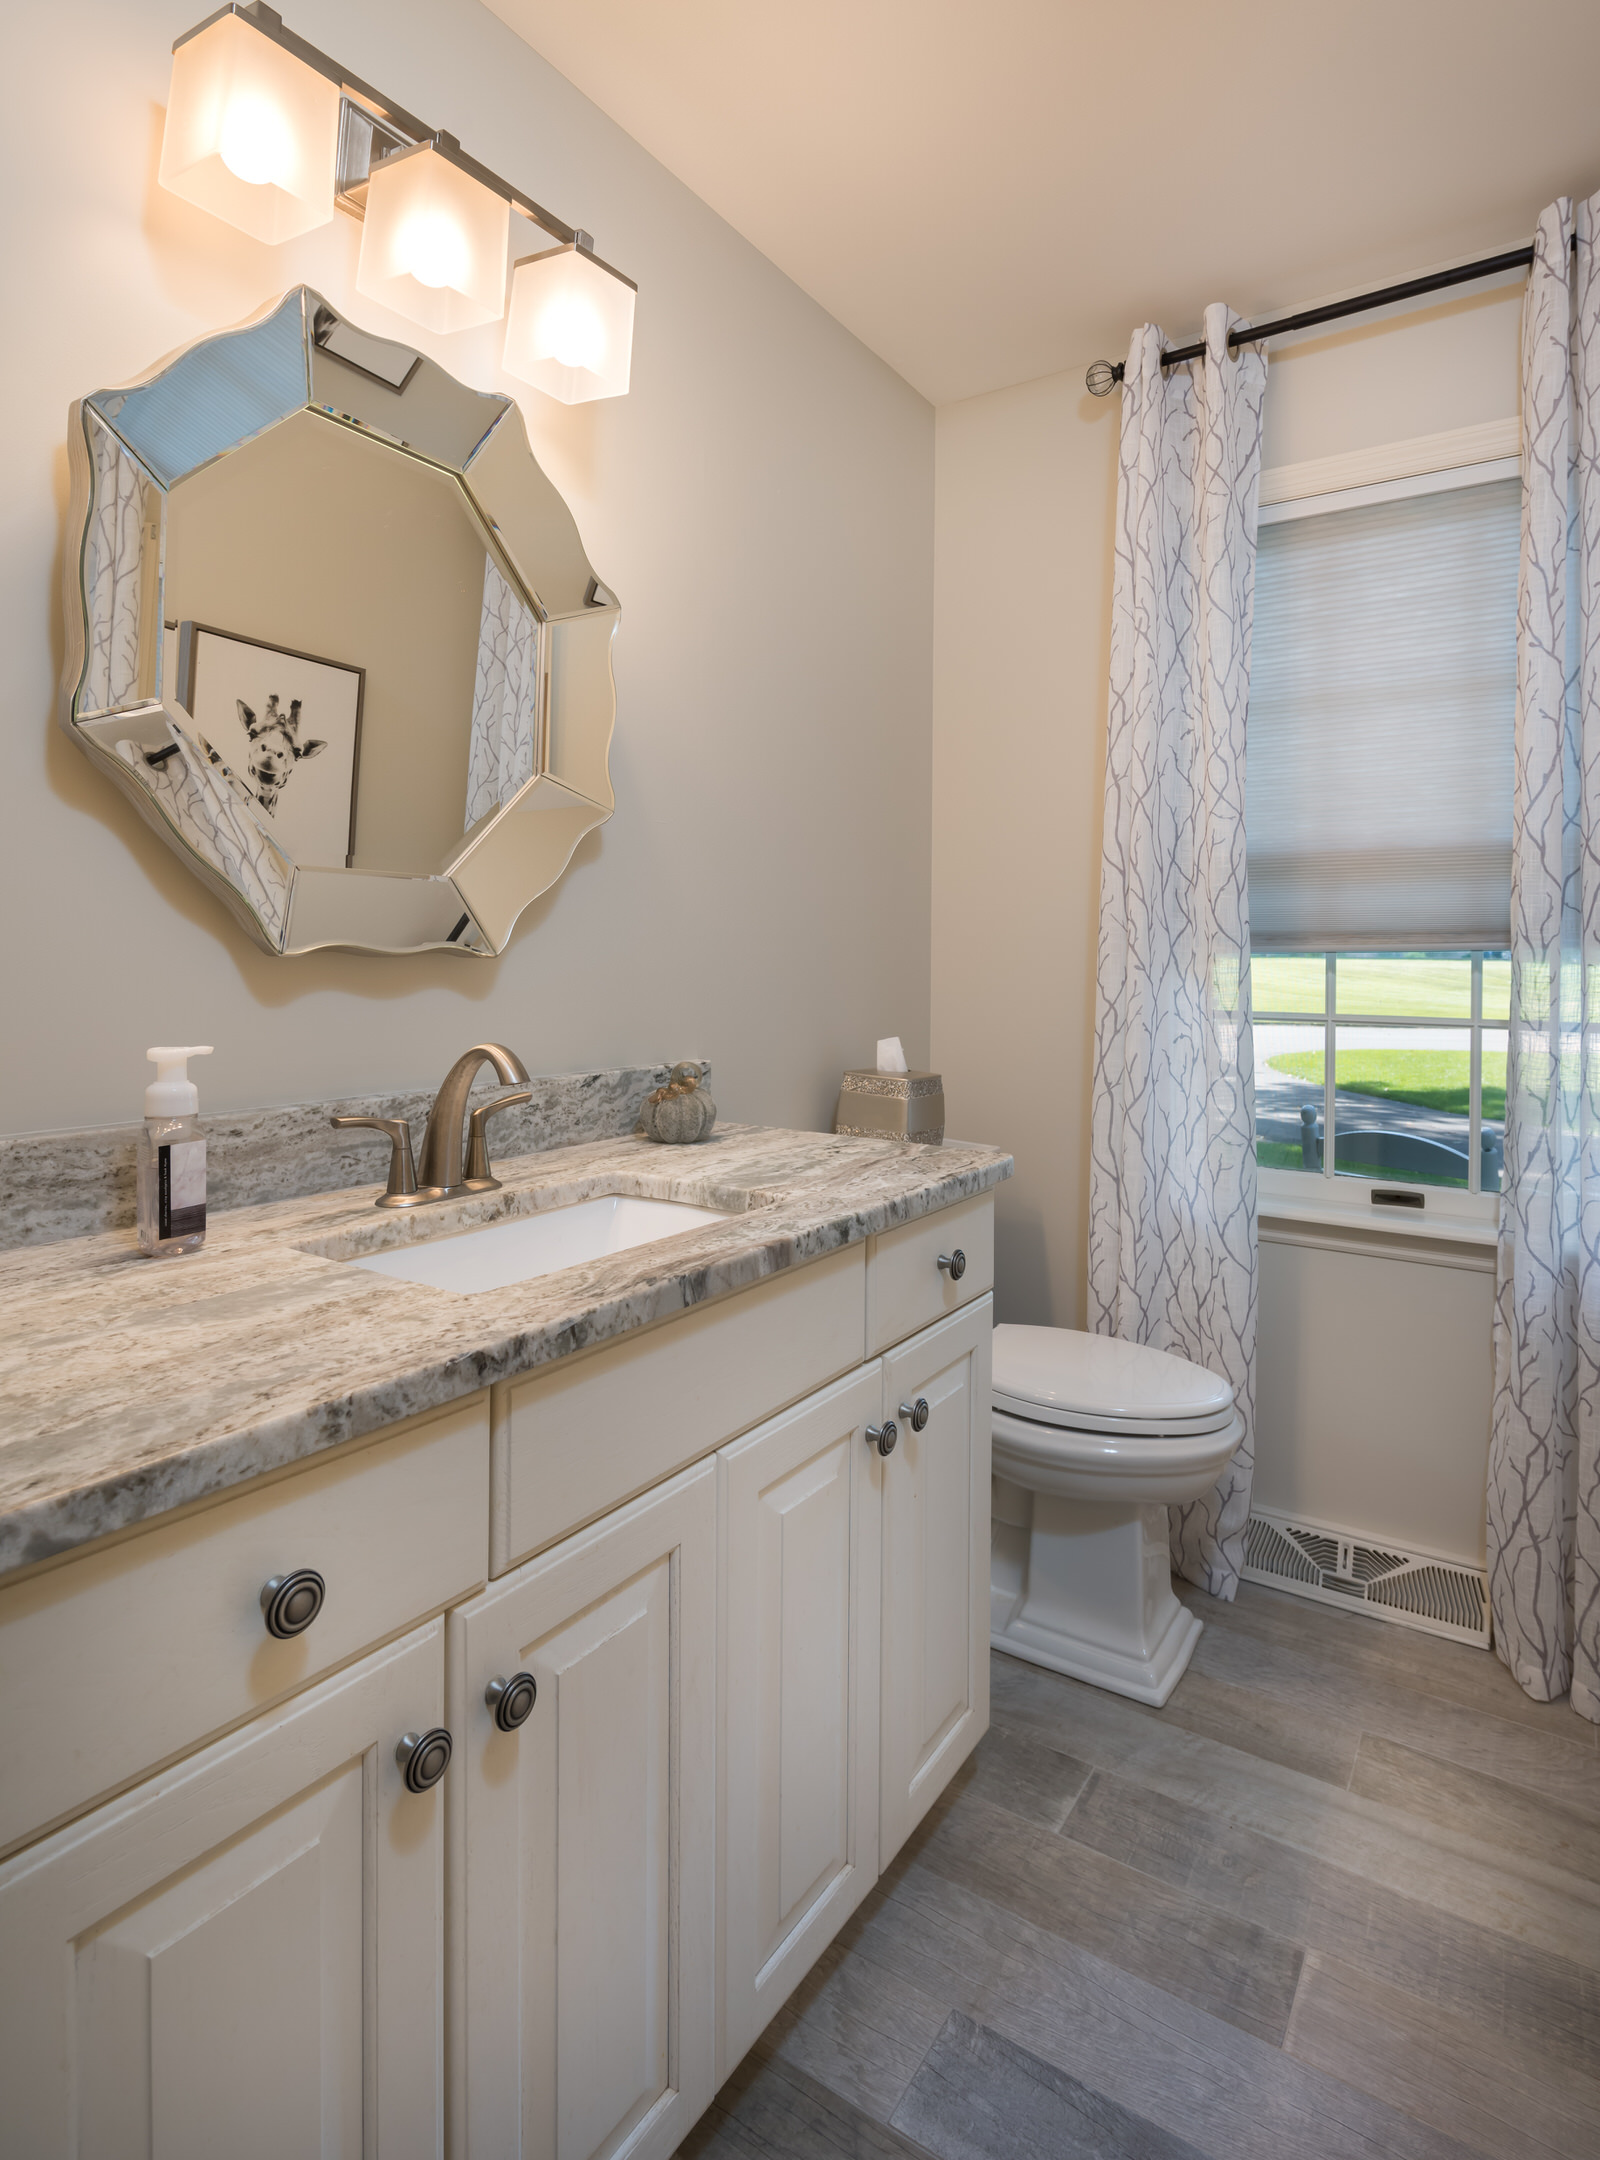 Form And Function Working In Perfect Harmony With The Colors And Material  Sections. The Floor Flows Into The Pantry And Updated Bath That Also  Features The ...